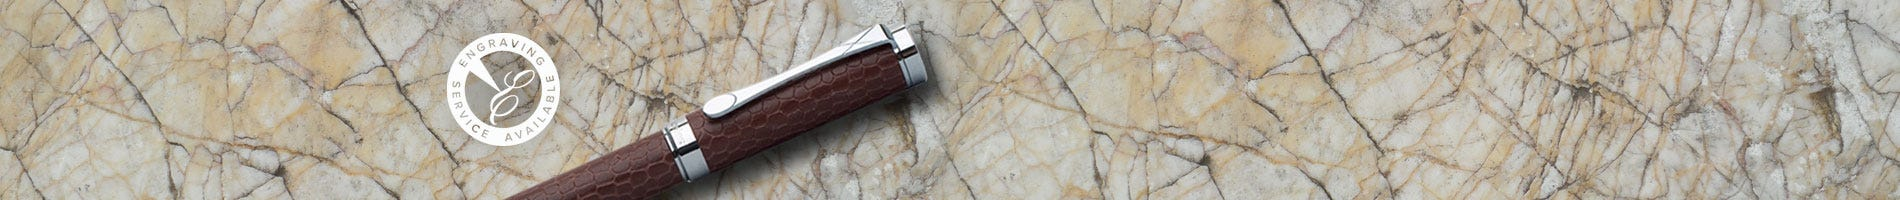 Coles Deluxe fountain pen brown leather